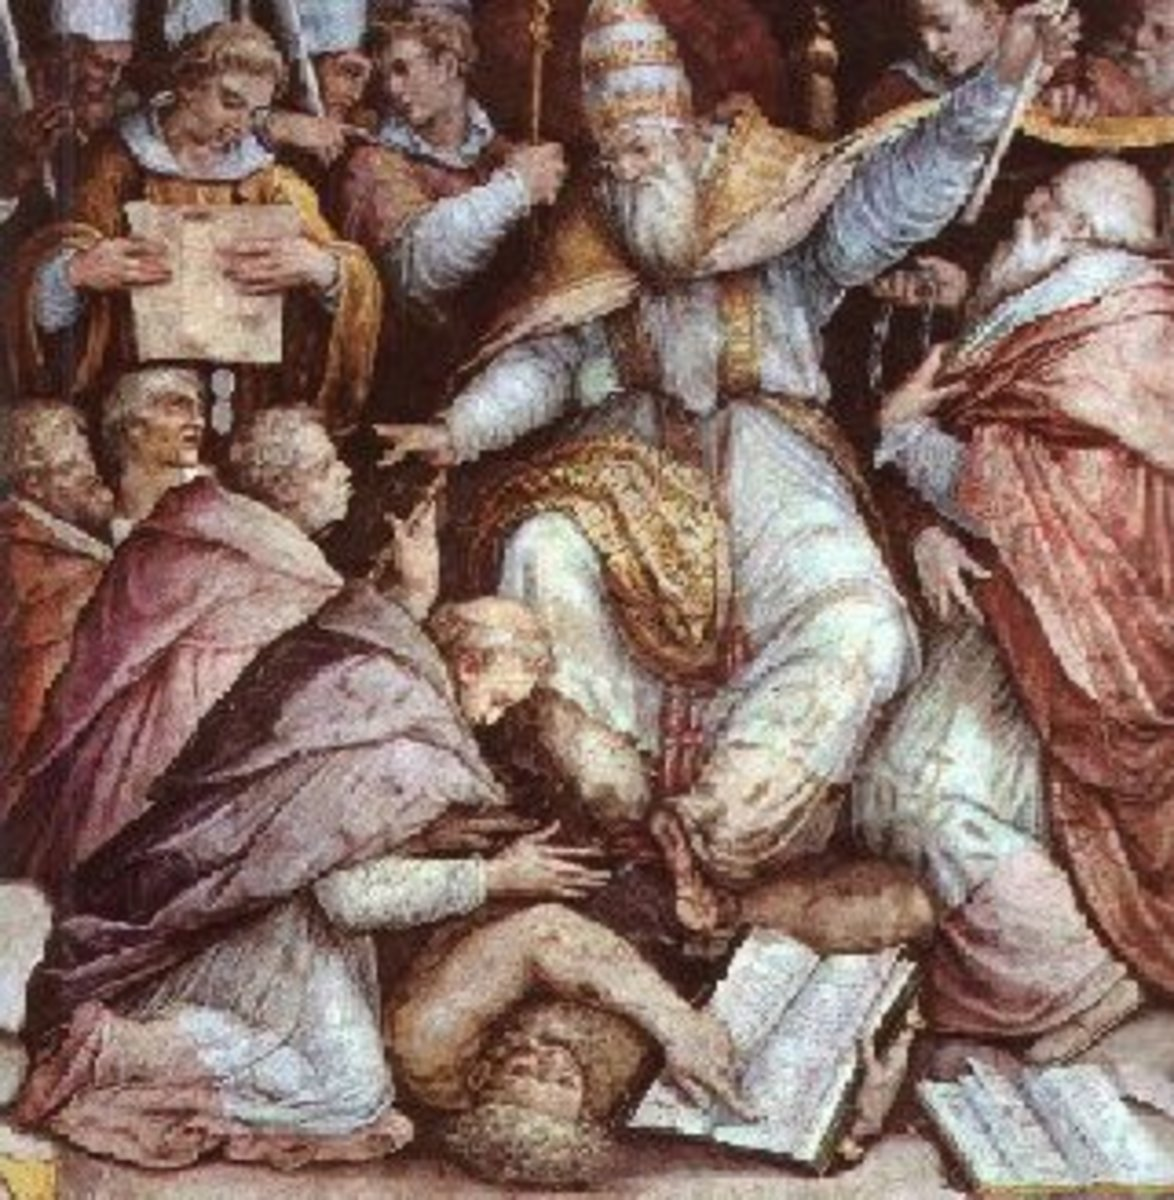 Henry IV receives one of his several excommunications.